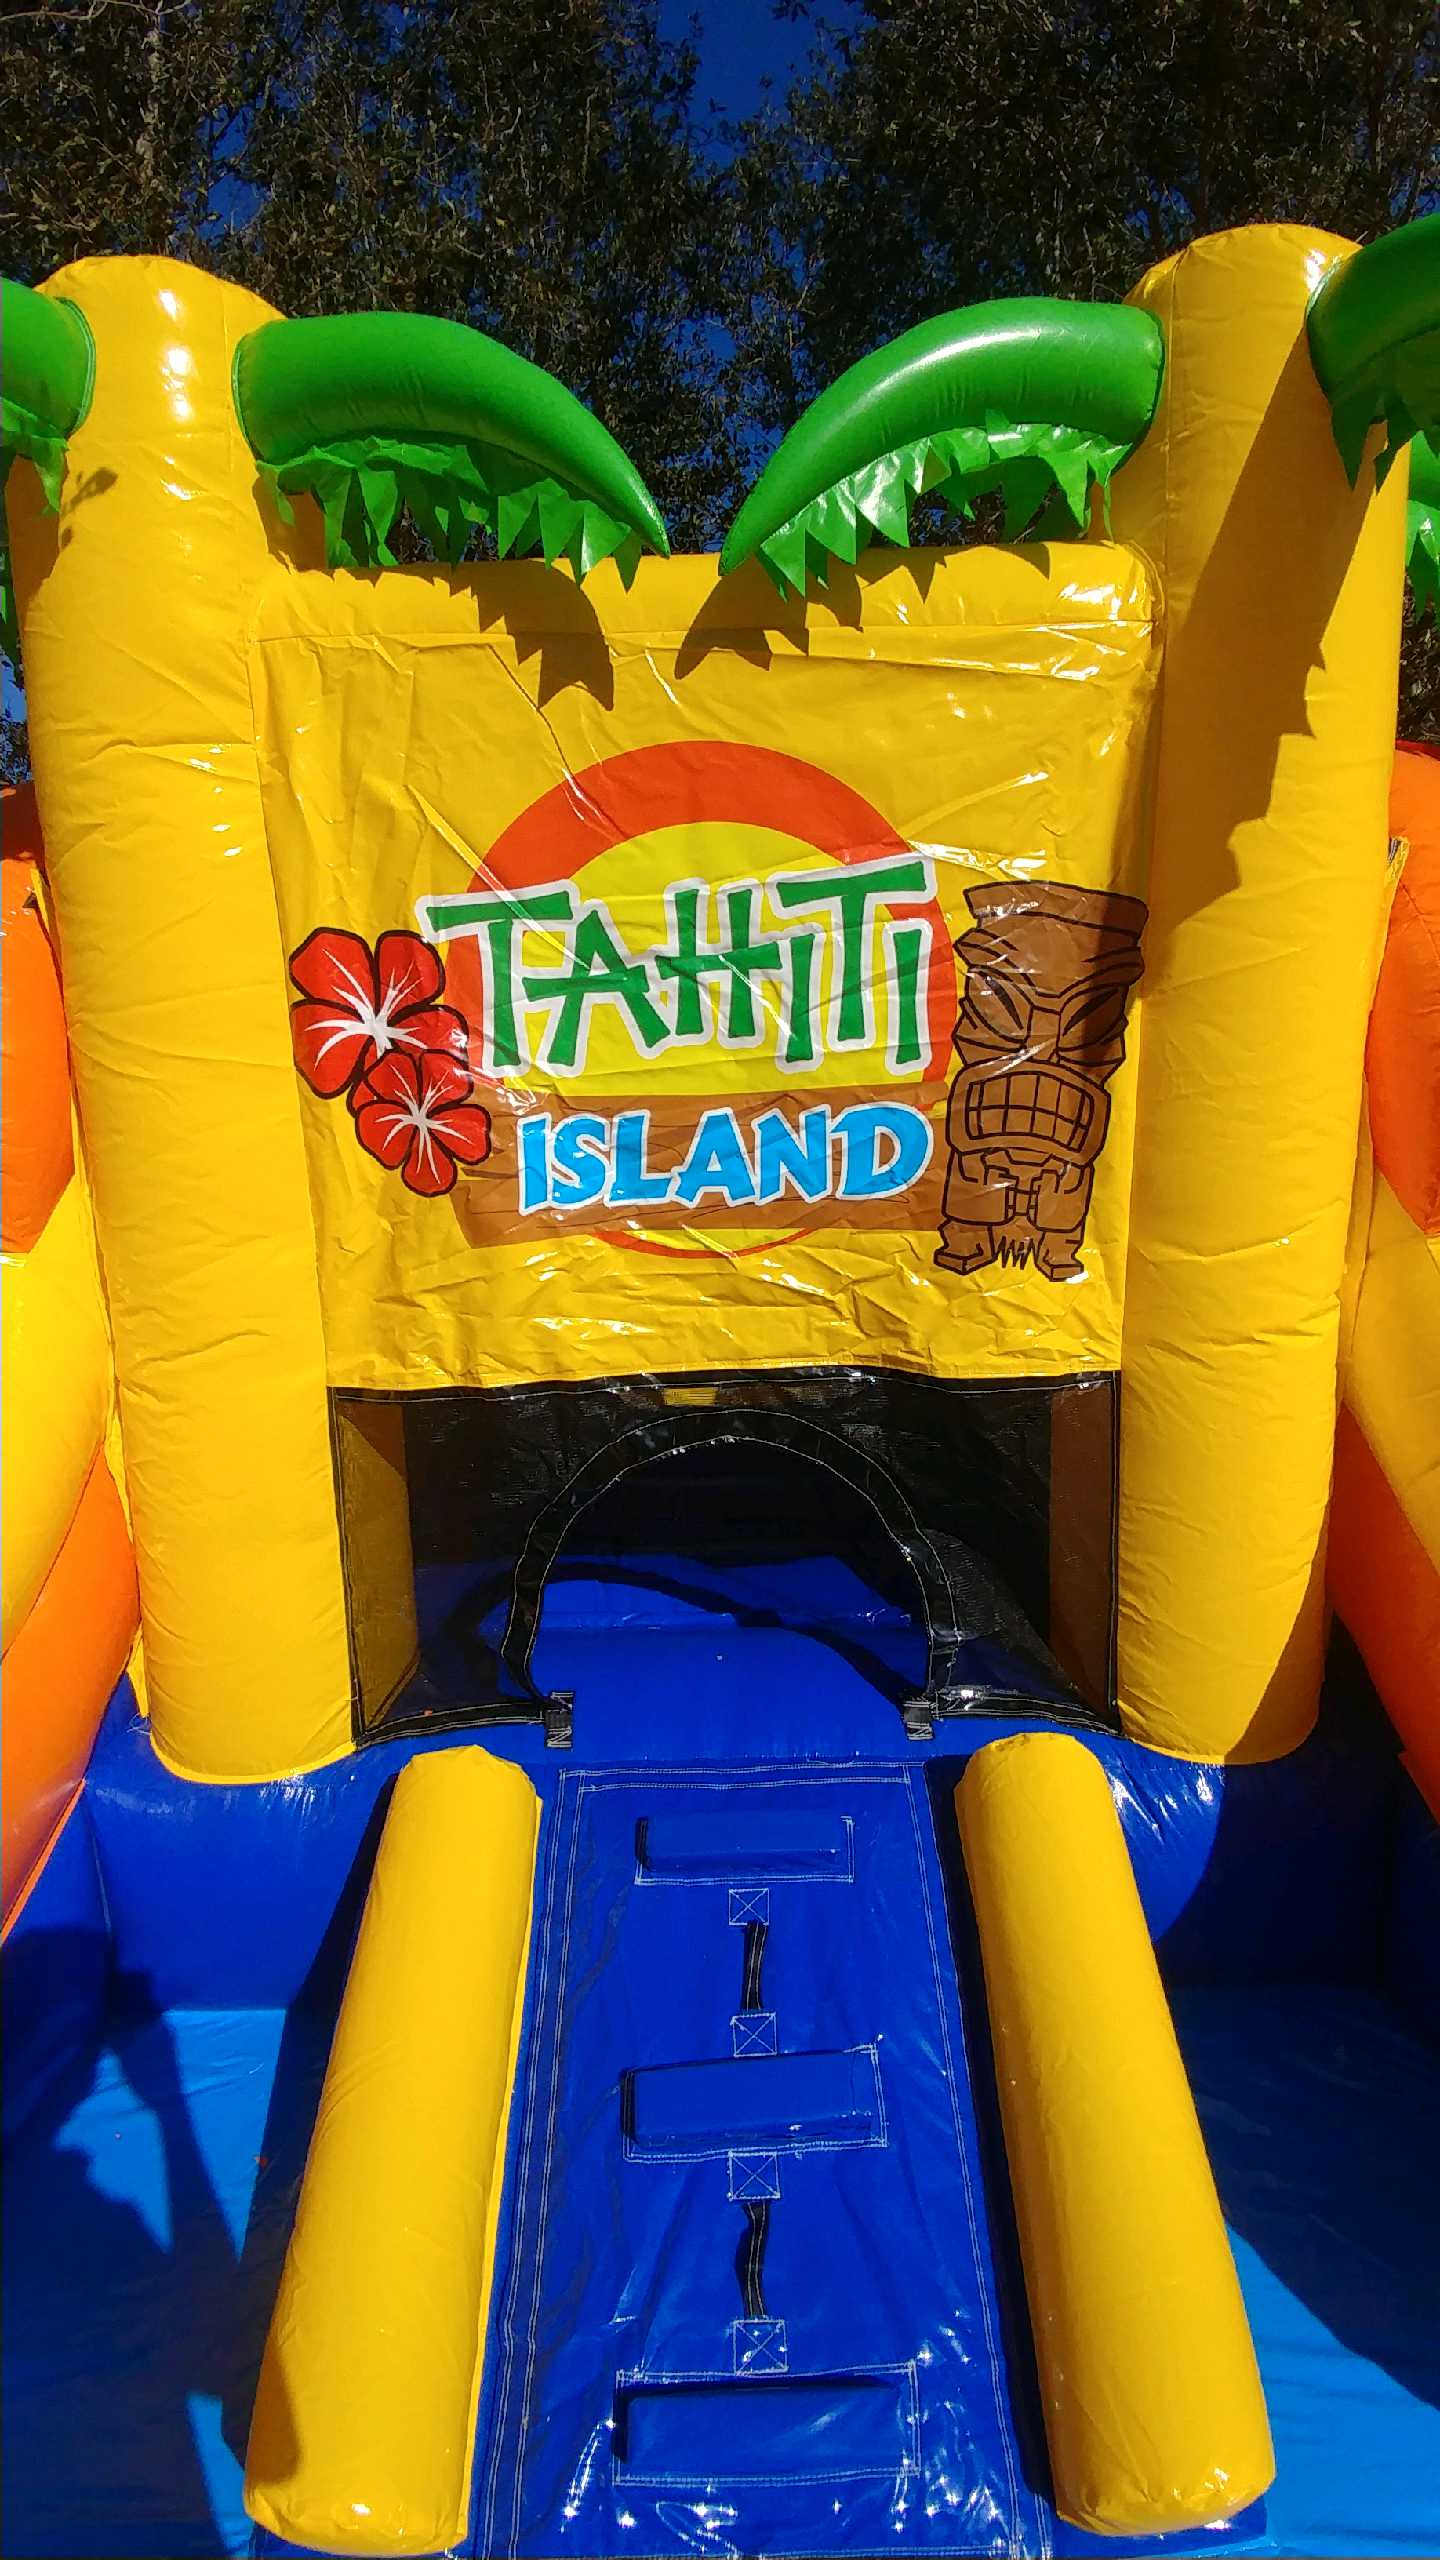 Tahiti Island Toddler Bounce House 2.jpg